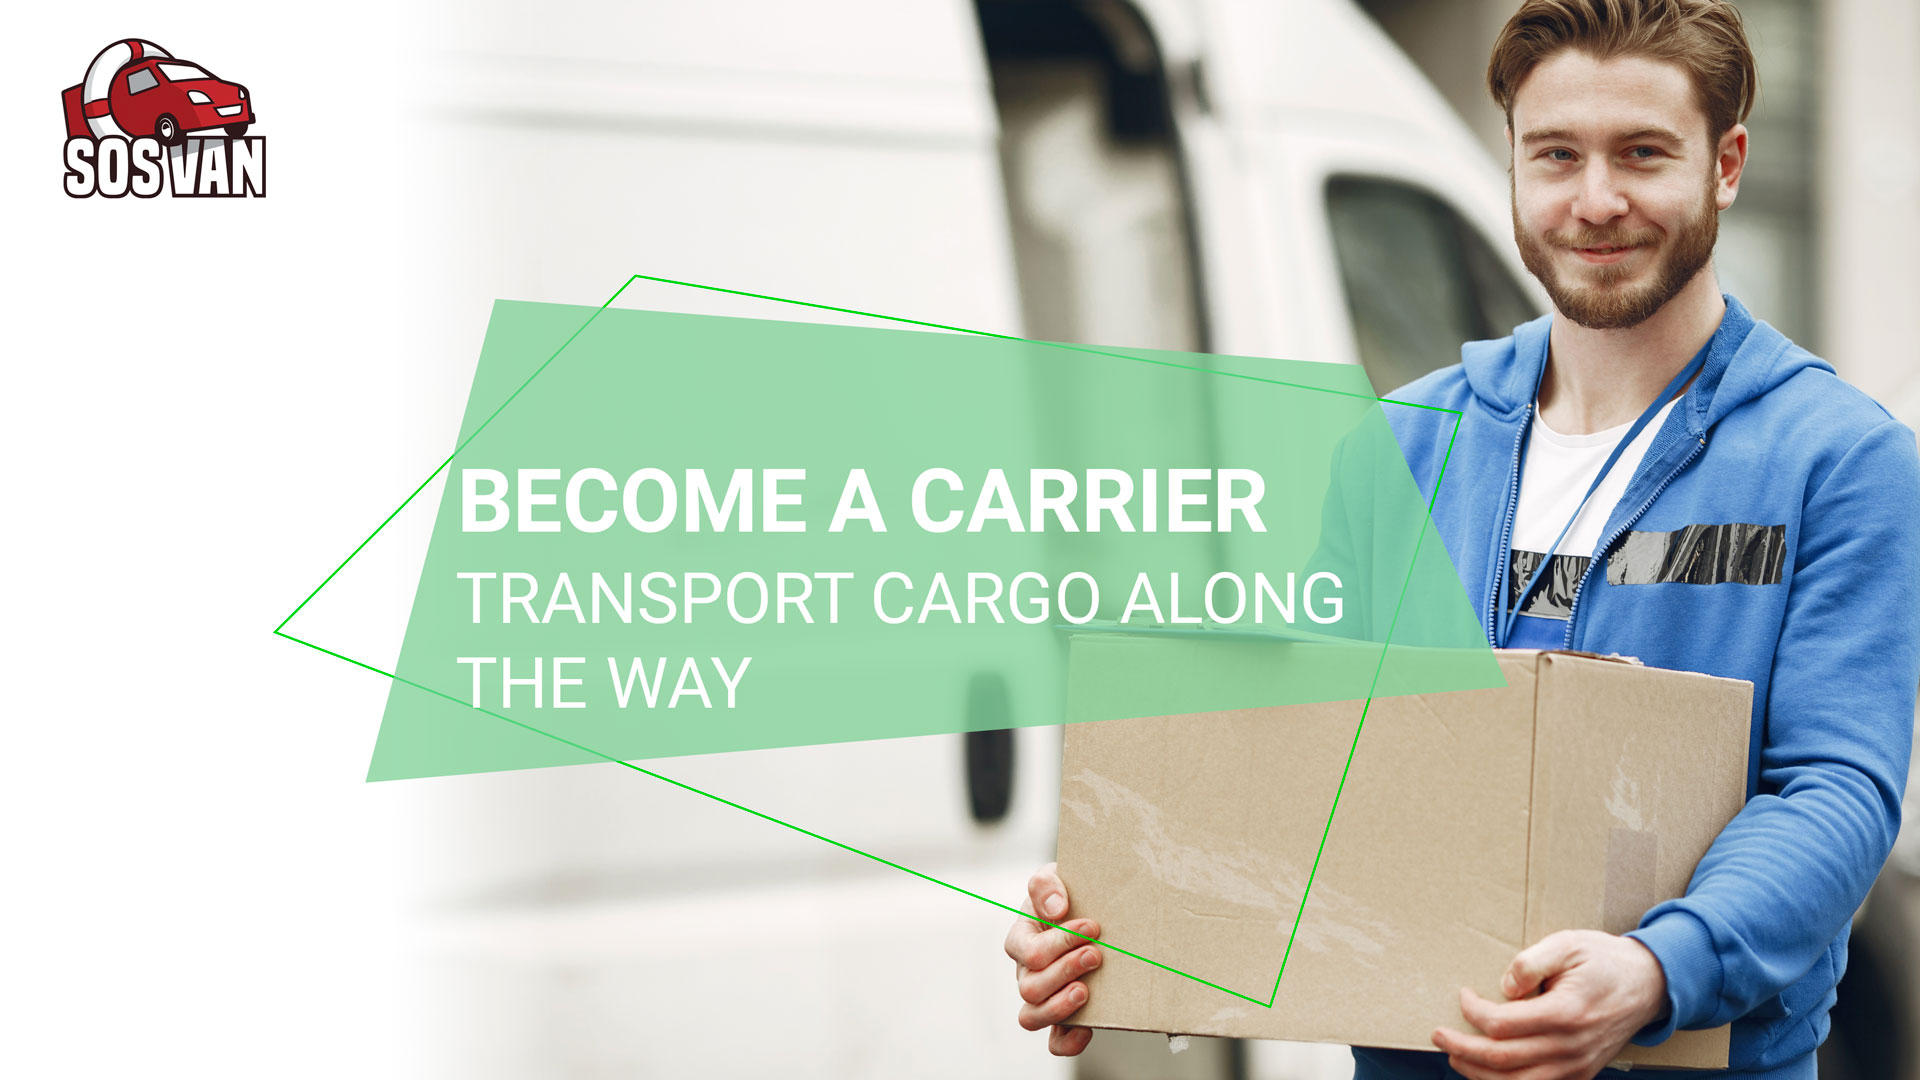 Become a carrier - transport cargo along the way